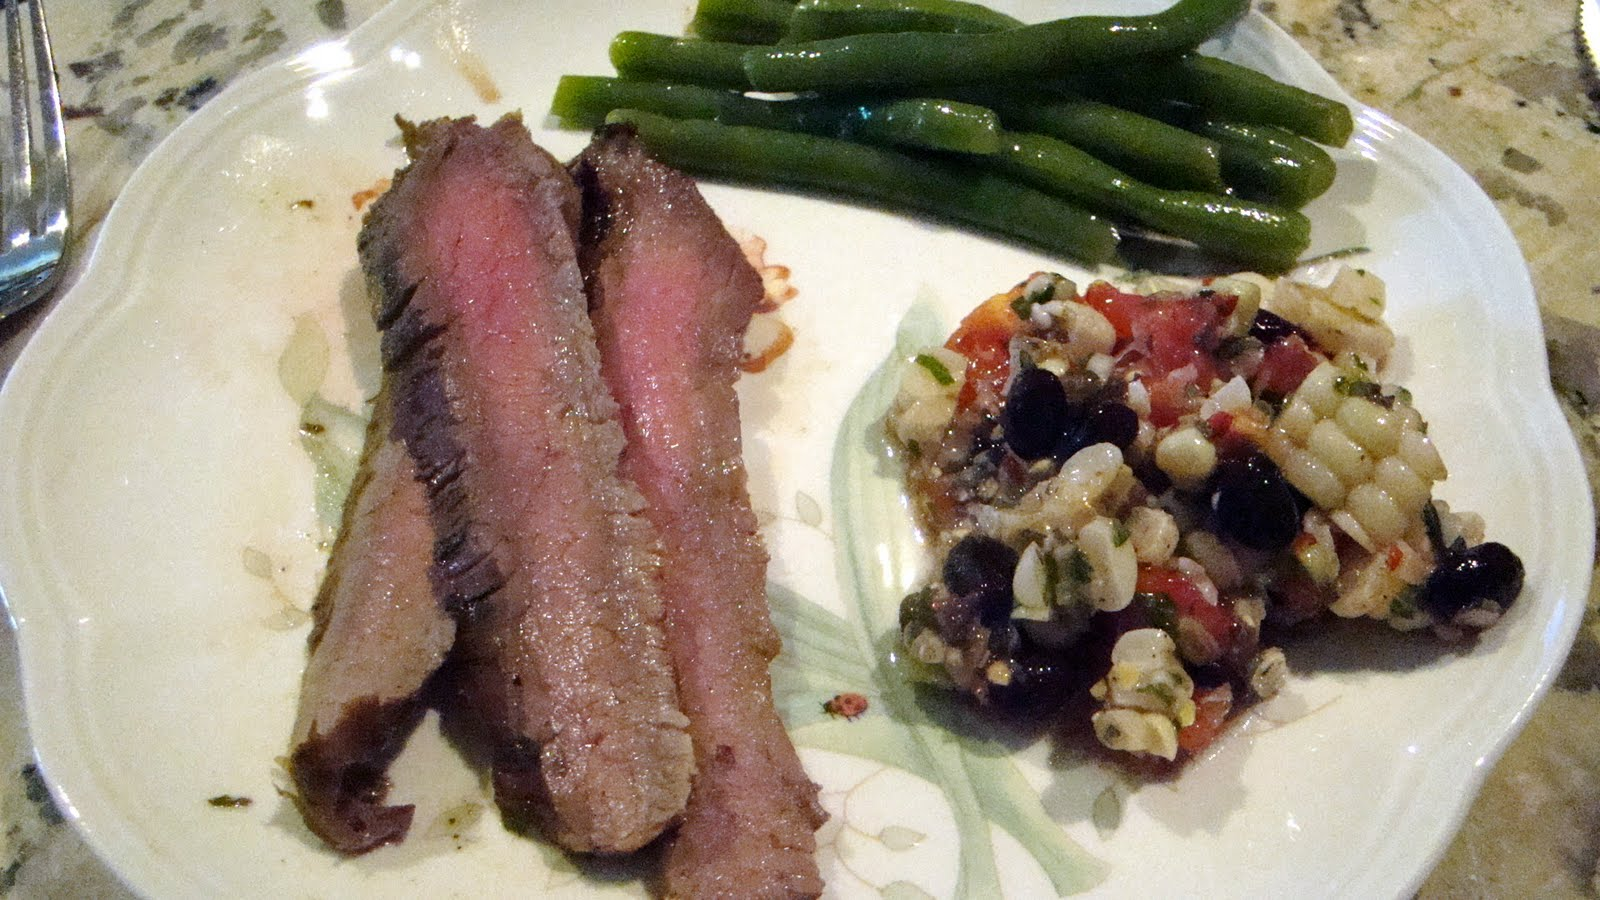 The Bear Cupboard: MIRACLE-MARINATED GRILLED FLANK STEAK